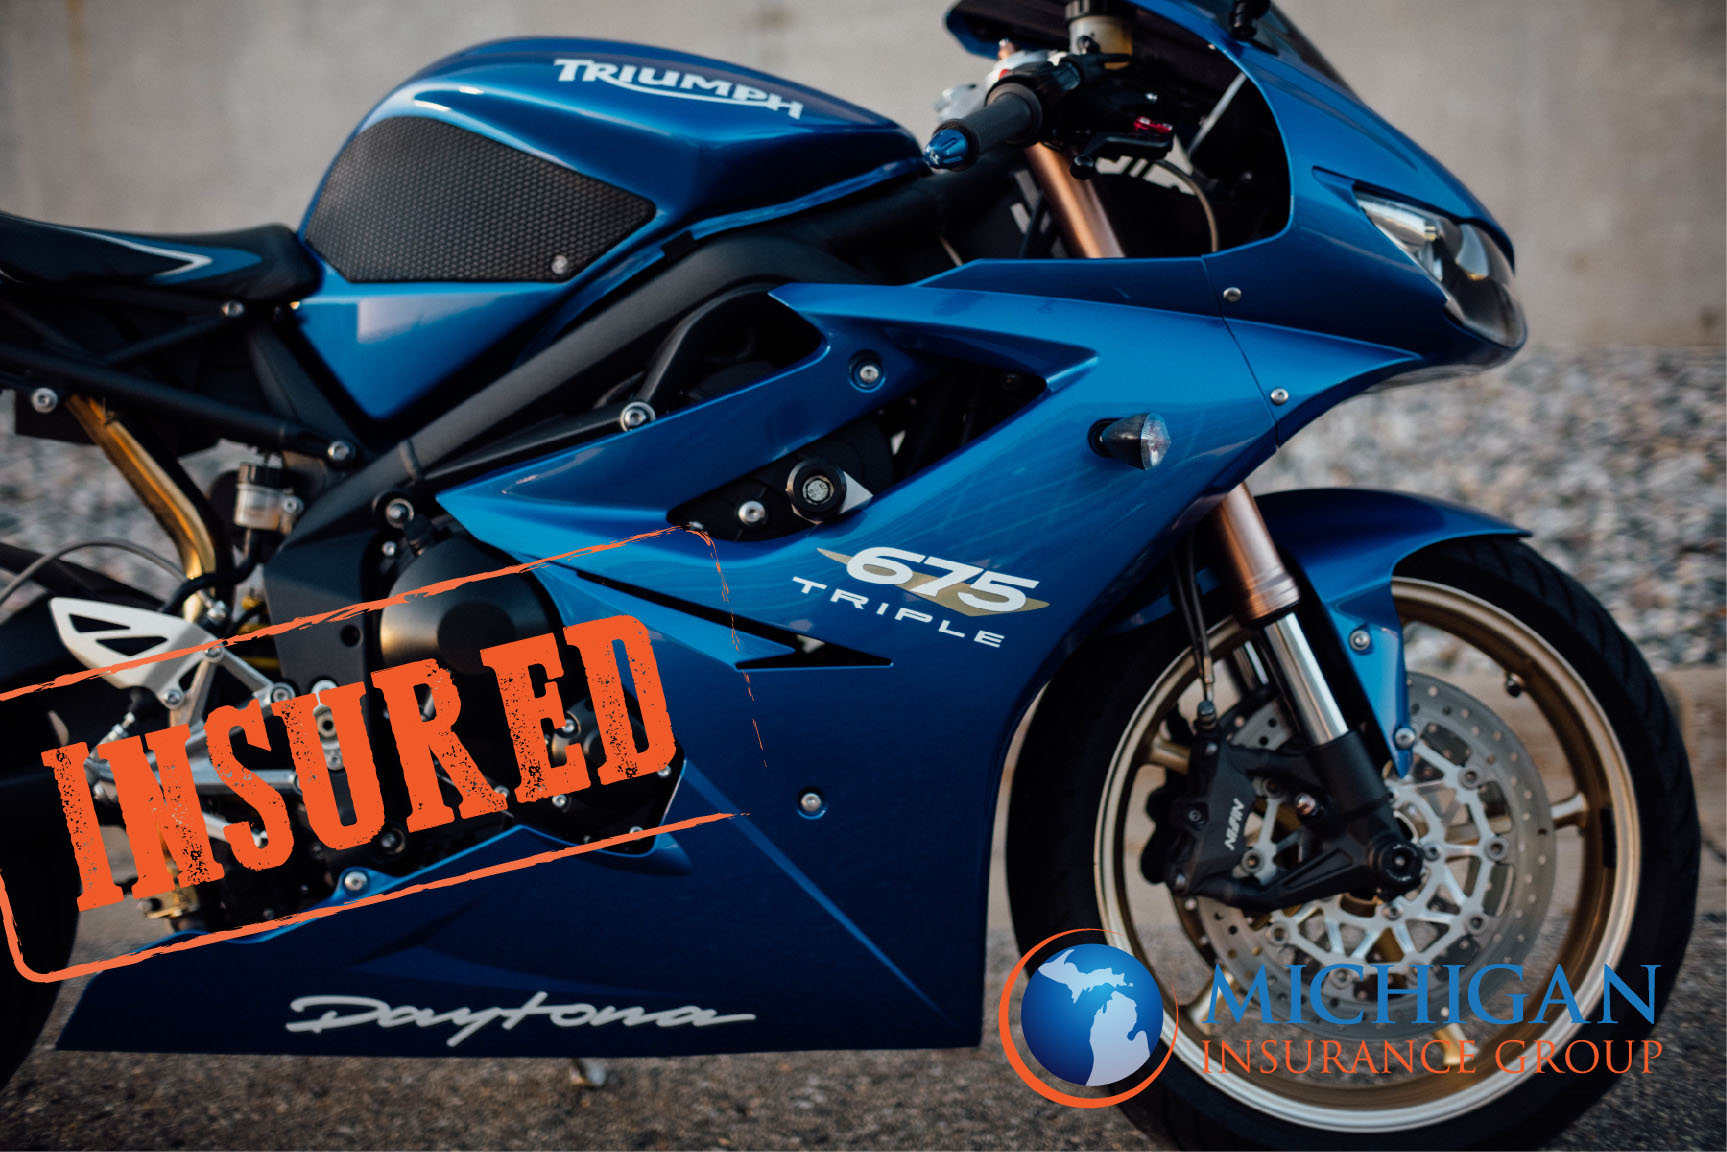 motorcycle-insurance, michigan-insurance-group